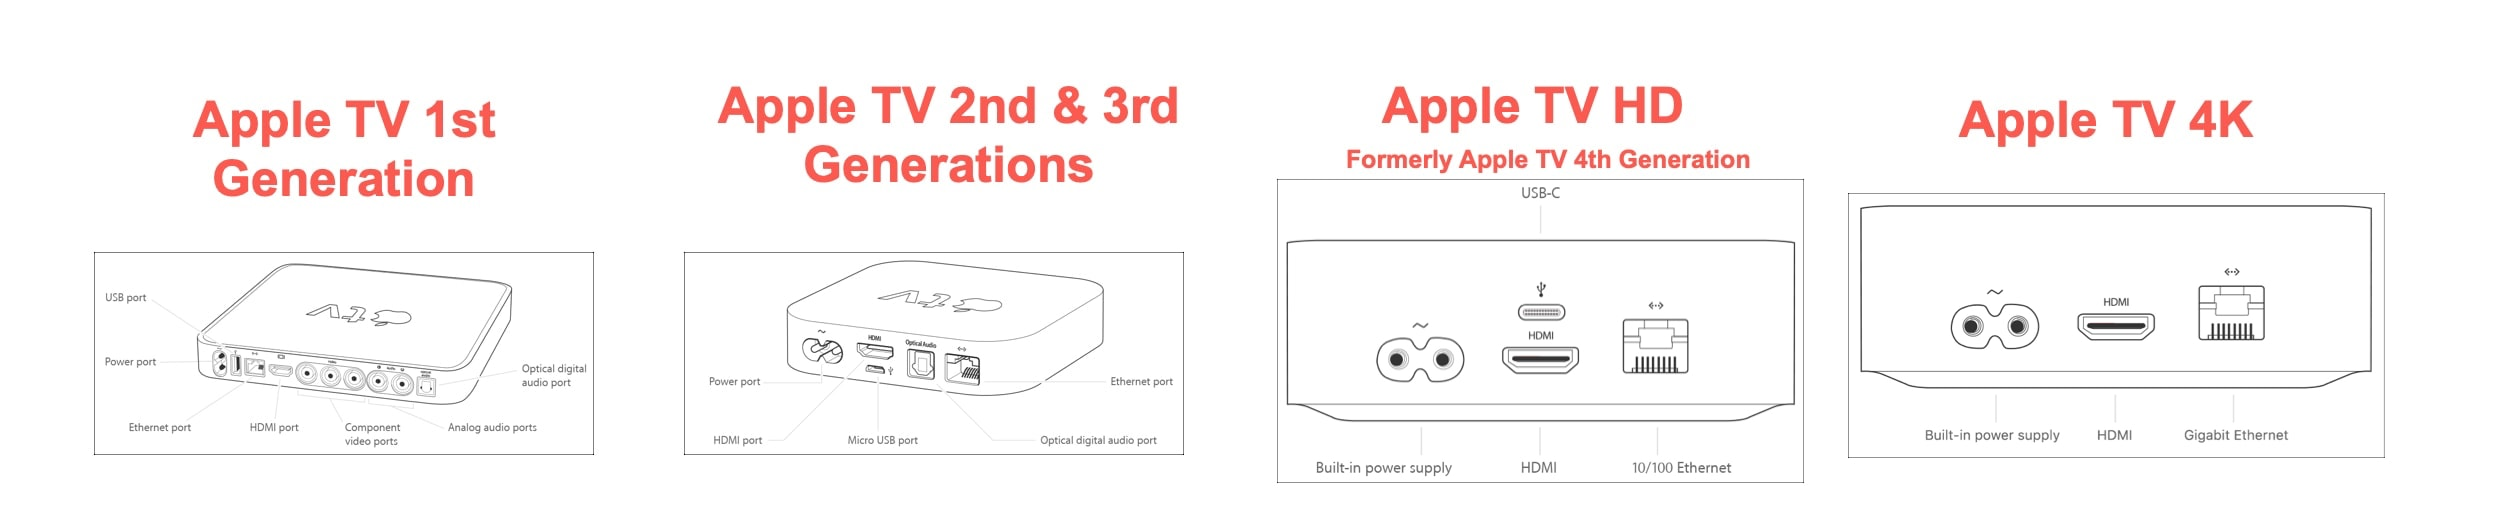 Apple TV tvOS 14 requirements and features-update July